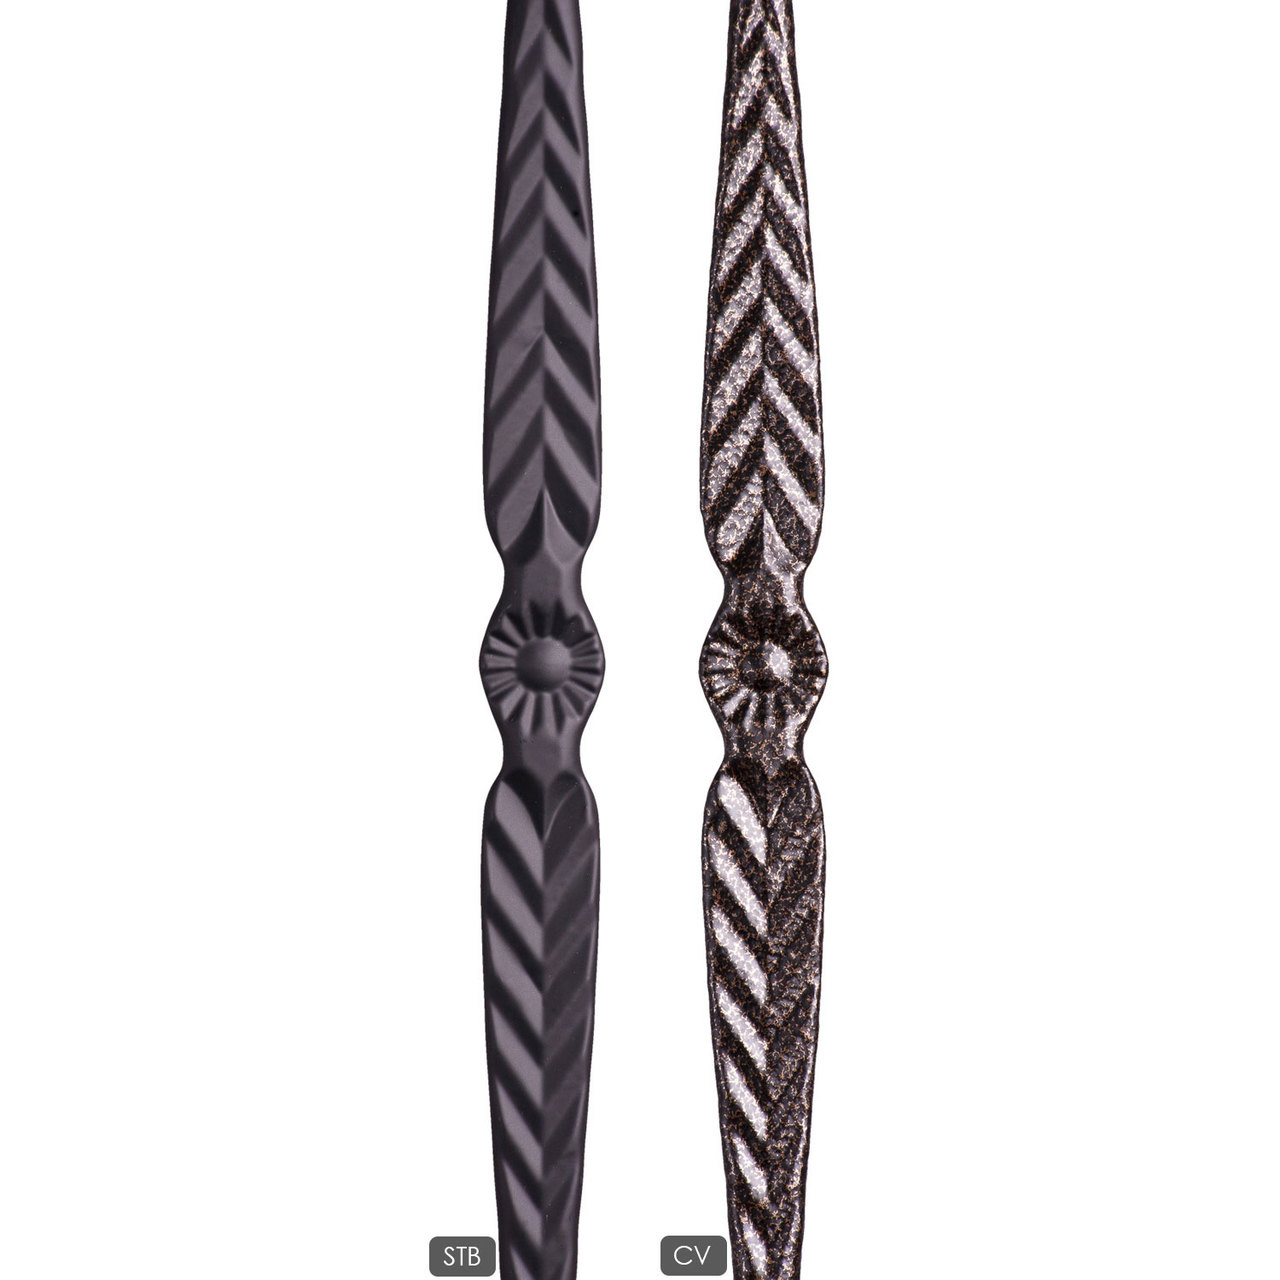 HF16.2.2 Straight Round Bar is available in satin black and copper vein powder coats.